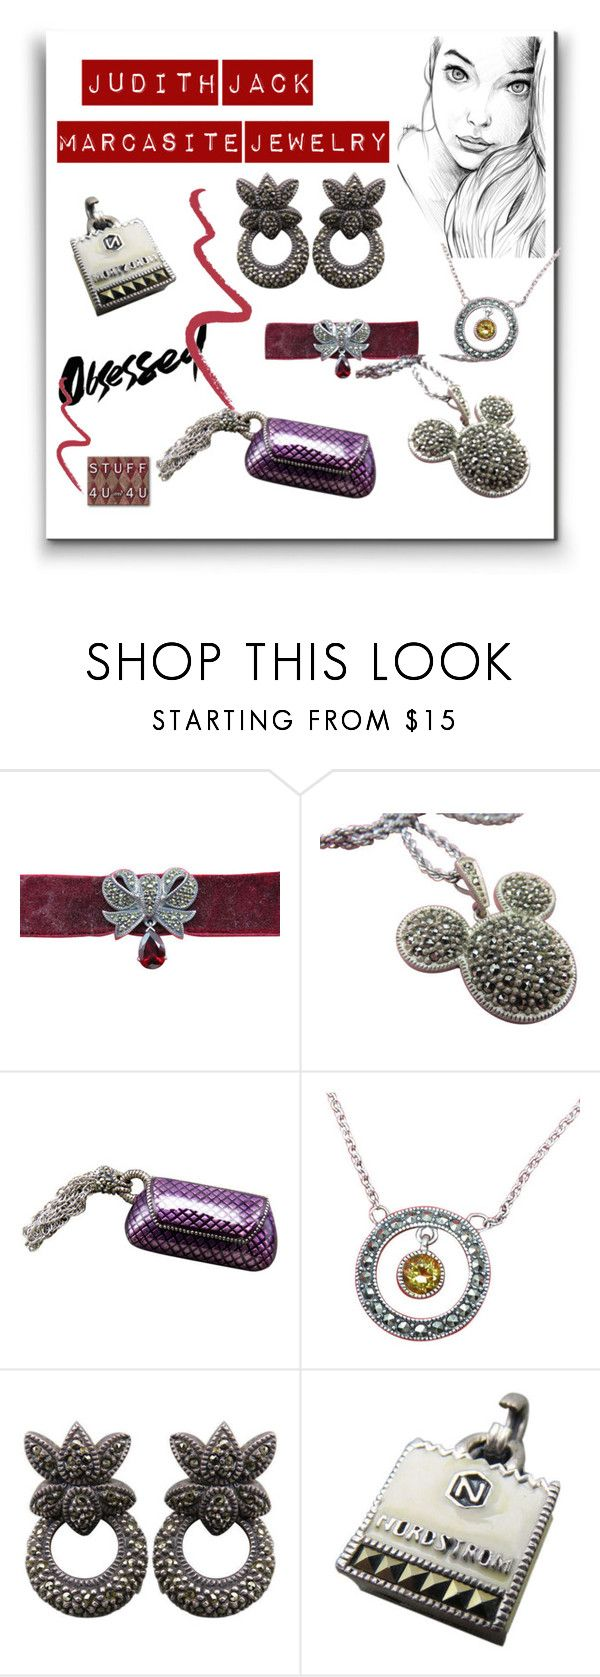 """""""Judith Jack Marcasite Jewelry"""" by stuff4uand4u ❤ liked on Polyvore featuring Judith Jack, Topshop, stuff4uand4u and stuffalicious"""